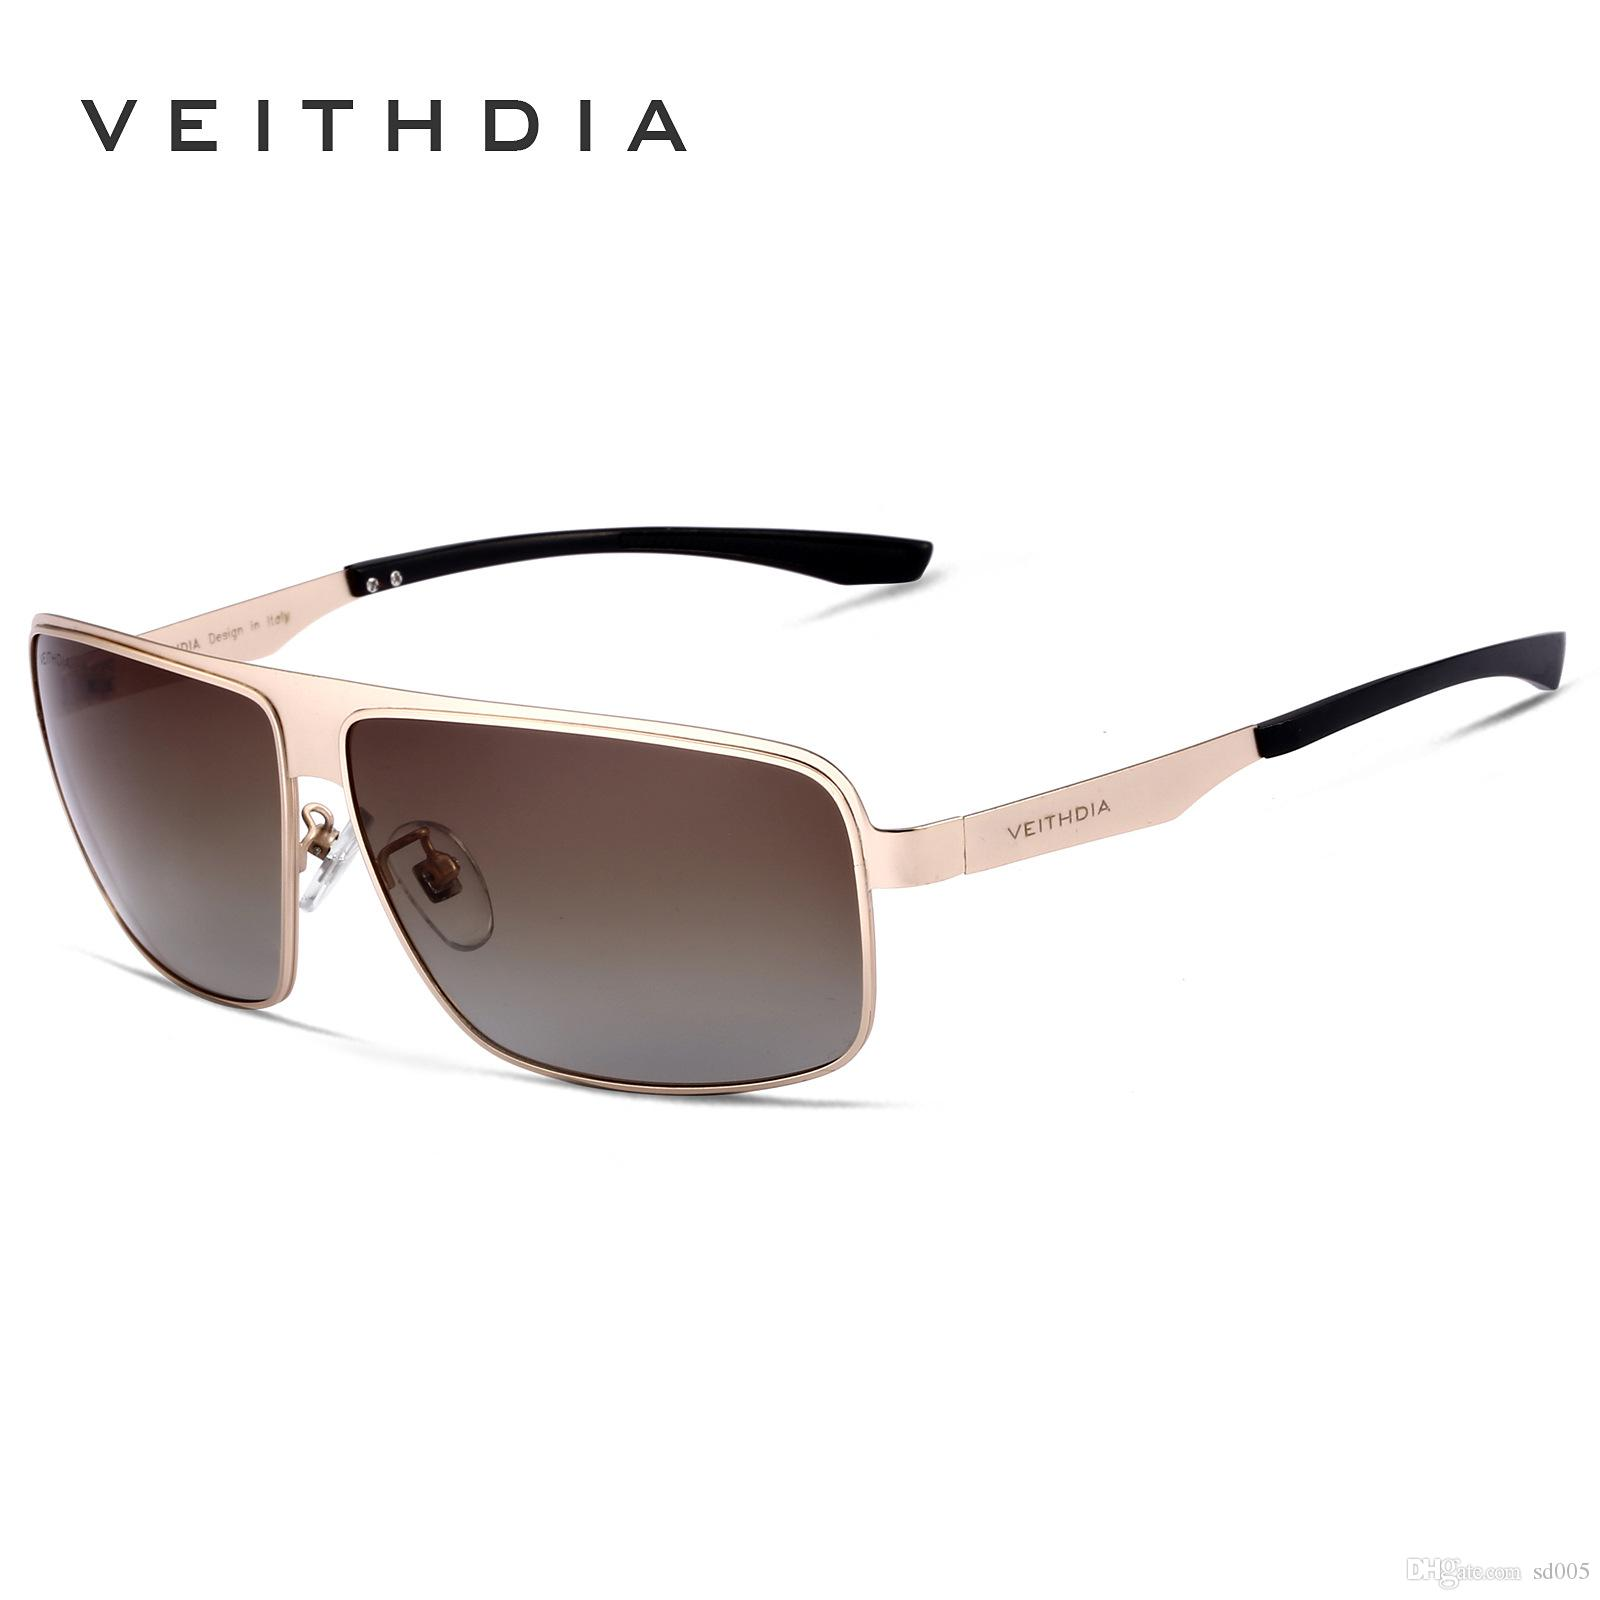 7434ada22c Designer Sunglasses Men Women Brand Fashion Stainless Steel Ultraviolet  Proof Glasses Resist UV 400 VEITHDIA Without Box 31ws Hh Native Sunglasses  Wholesale ...